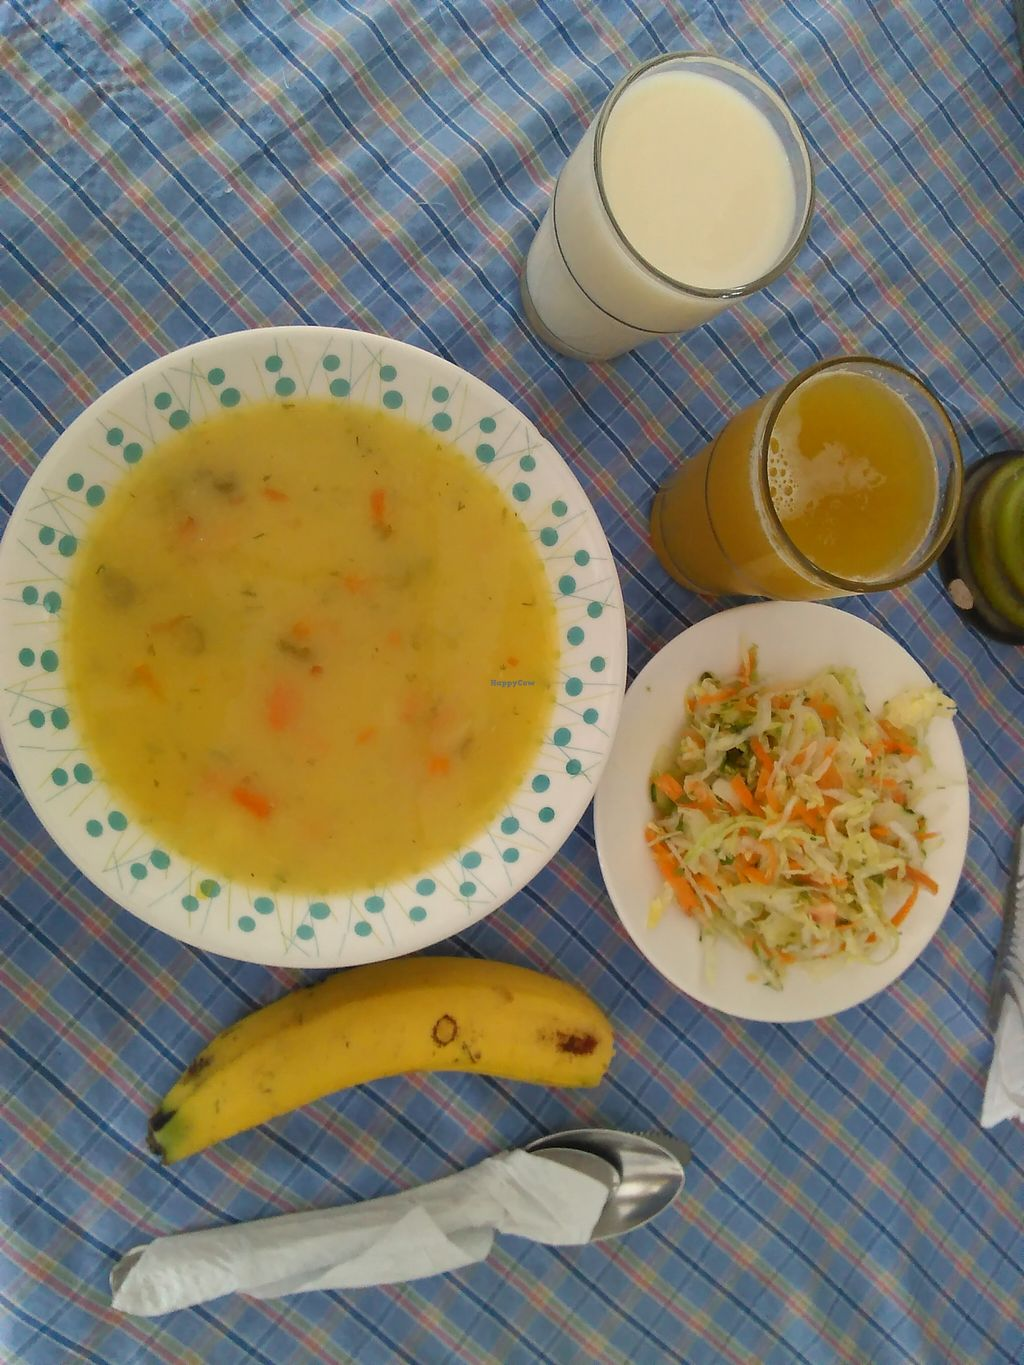 """Photo of REMOVED: Rincon Vegetariano  by <a href=""""/members/profile/maynard7"""">maynard7</a> <br/>Soup, salad & drinks... meal of the the day in March 2016 <br/> March 7, 2016  - <a href='/contact/abuse/image/32899/139126'>Report</a>"""